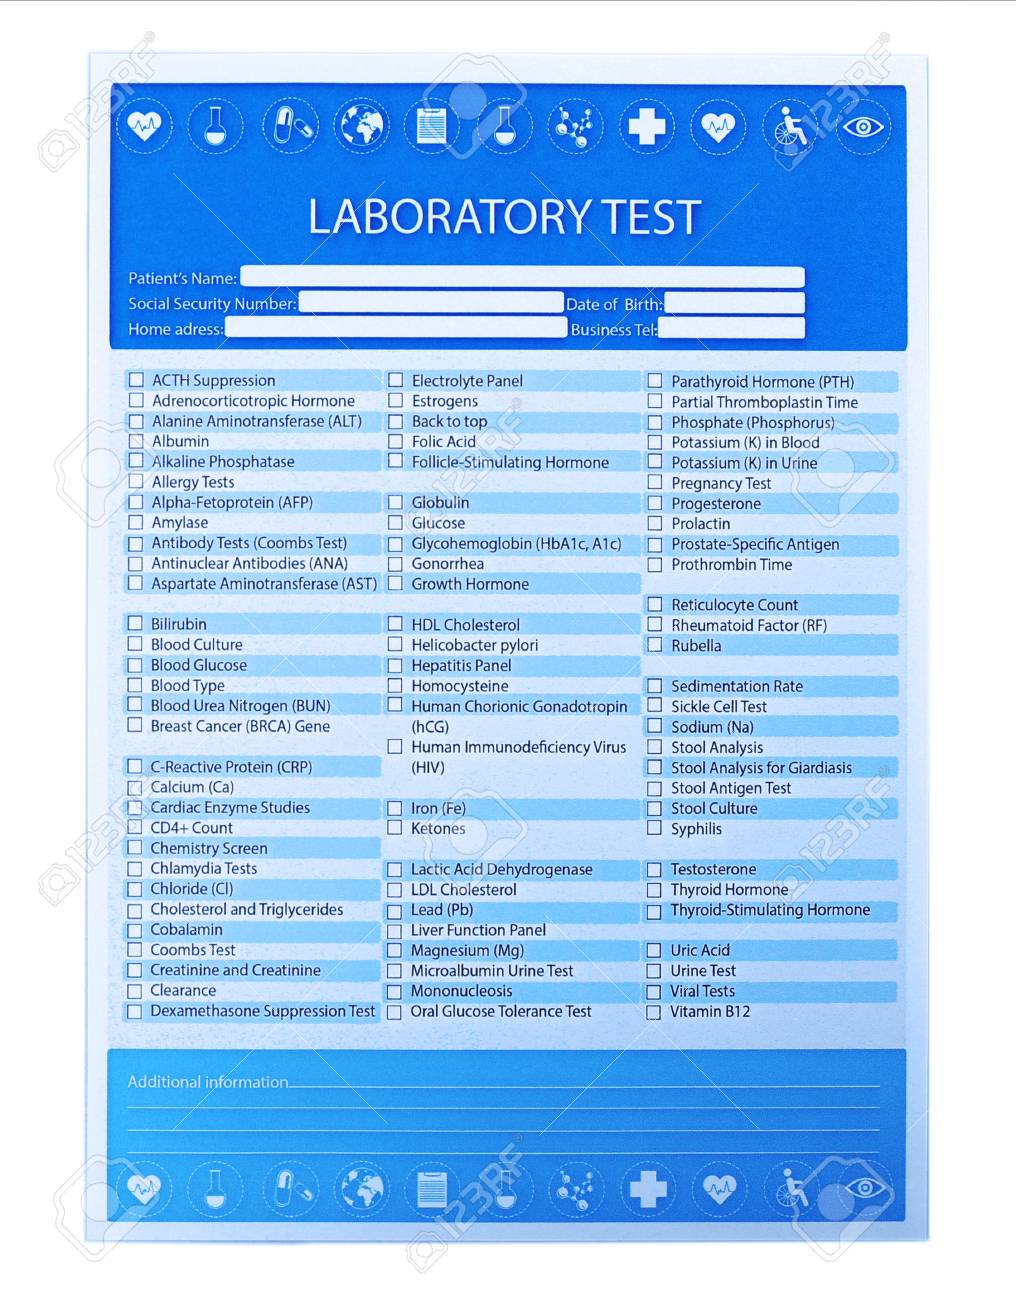 Laboratory test list isolated on white background, close up